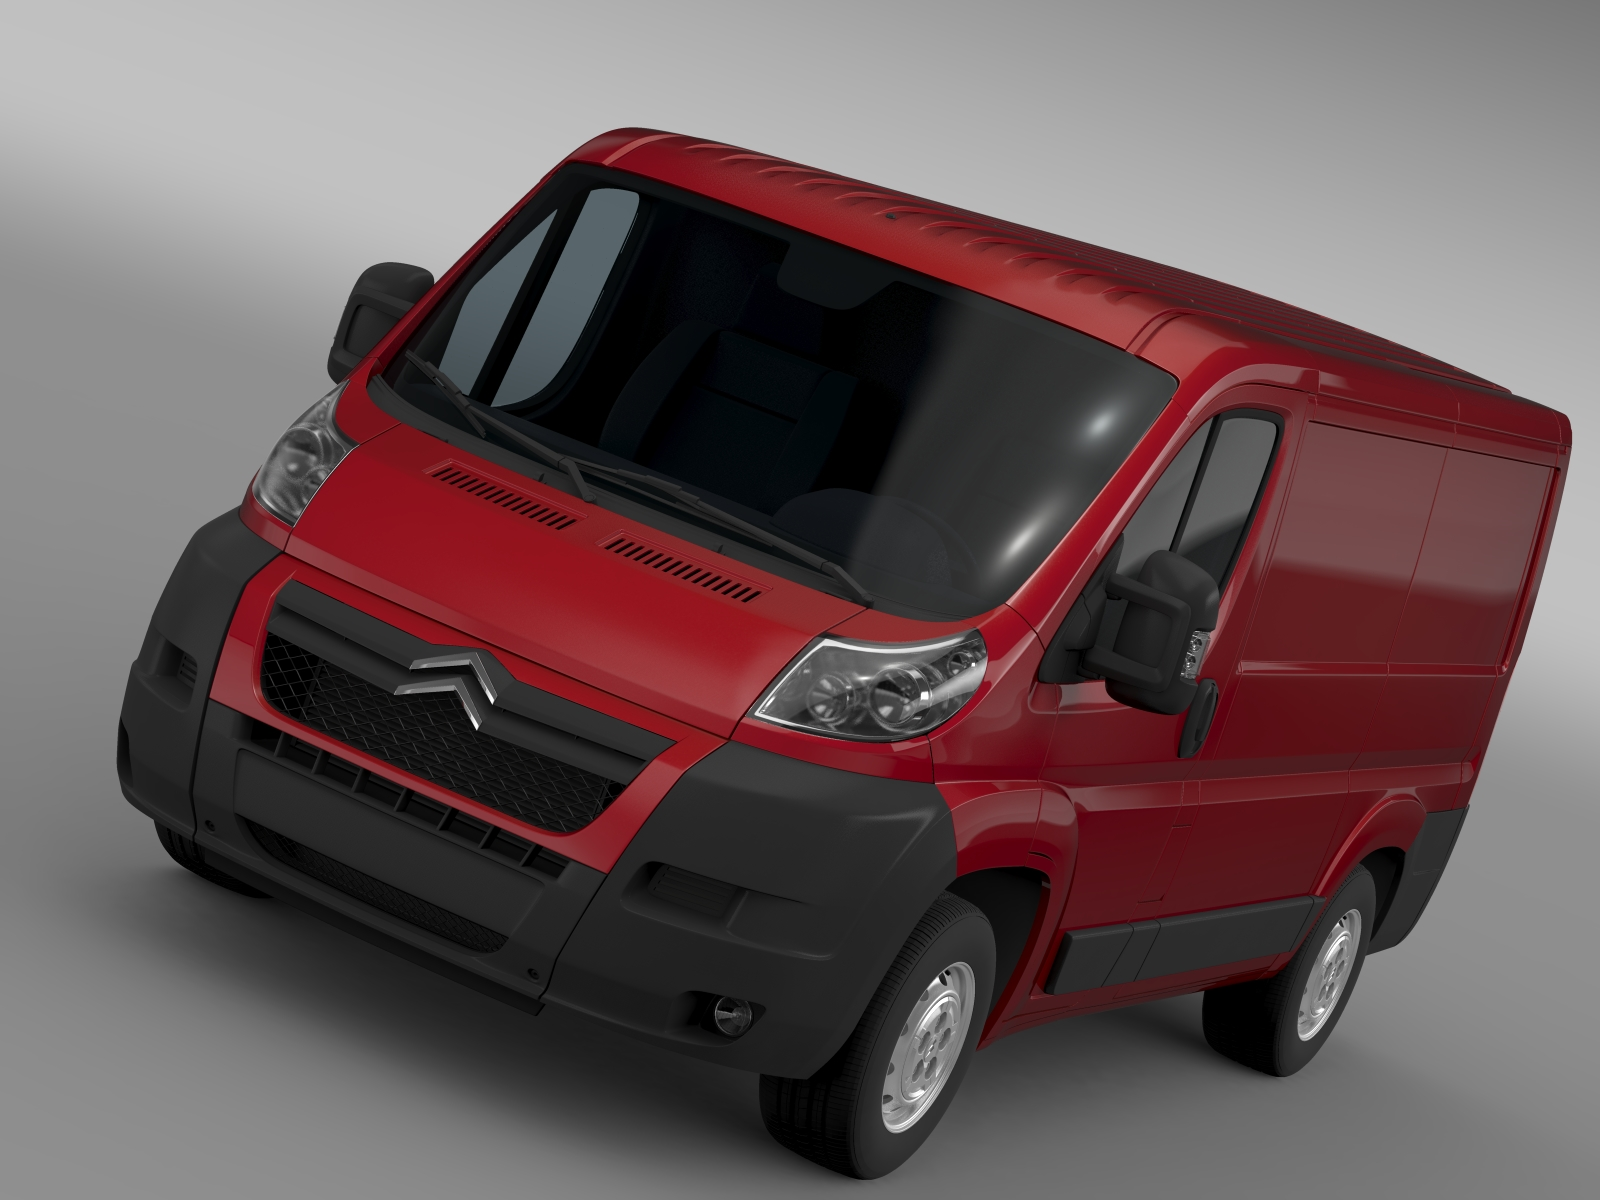 citroen jumper 250 l1h1 2006 -2014 3d model 3ds max fbx c4d hr hr xsi obj 213169